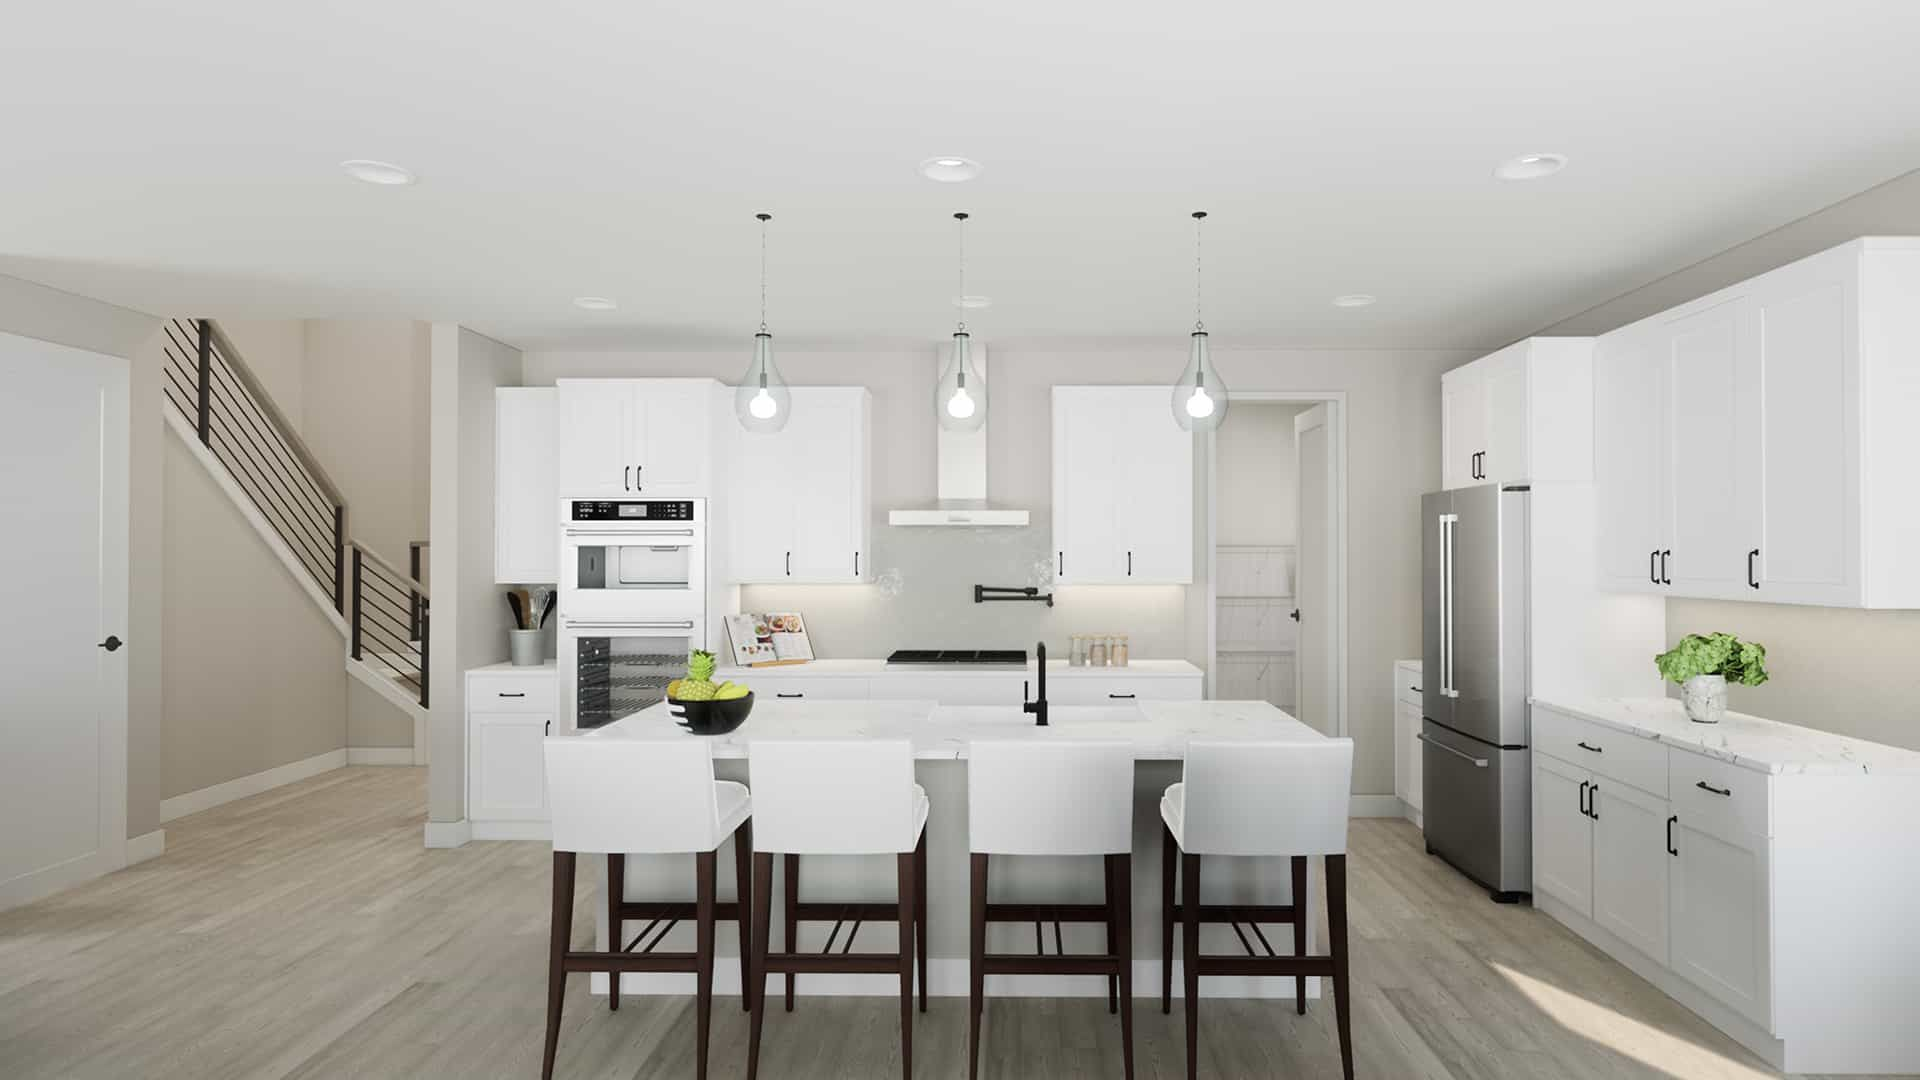 Kitchen featured in the Plan A-270 By Tri Pointe Homes in Bremerton, WA